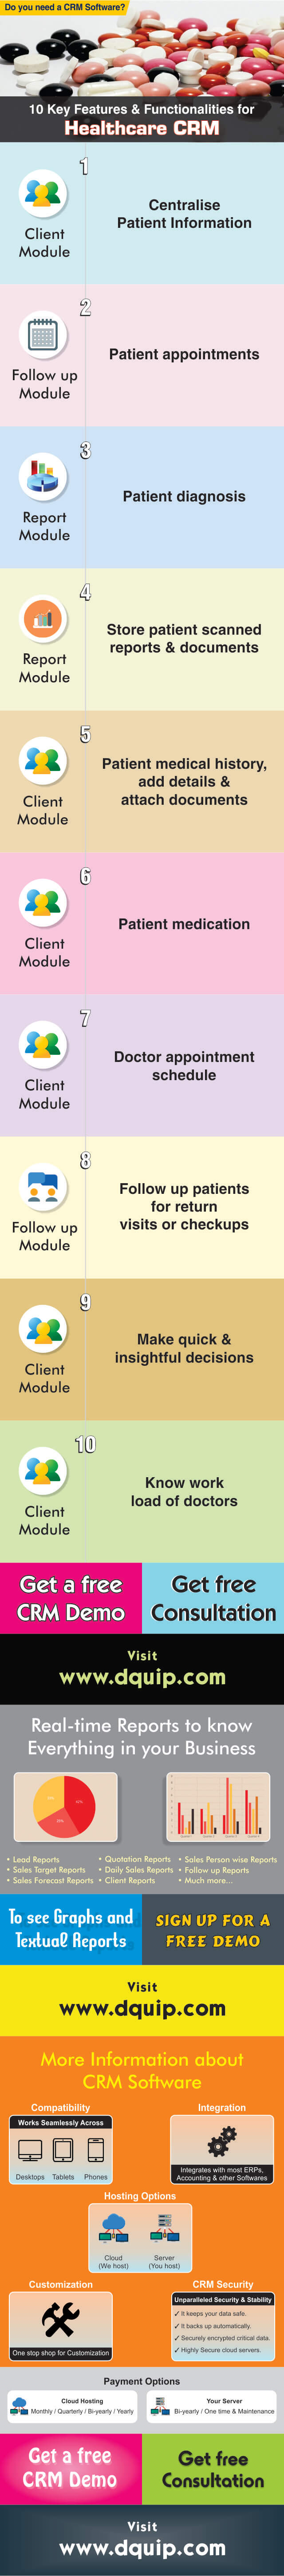 Infographic on Features and Functionalities of Healthcare CRM